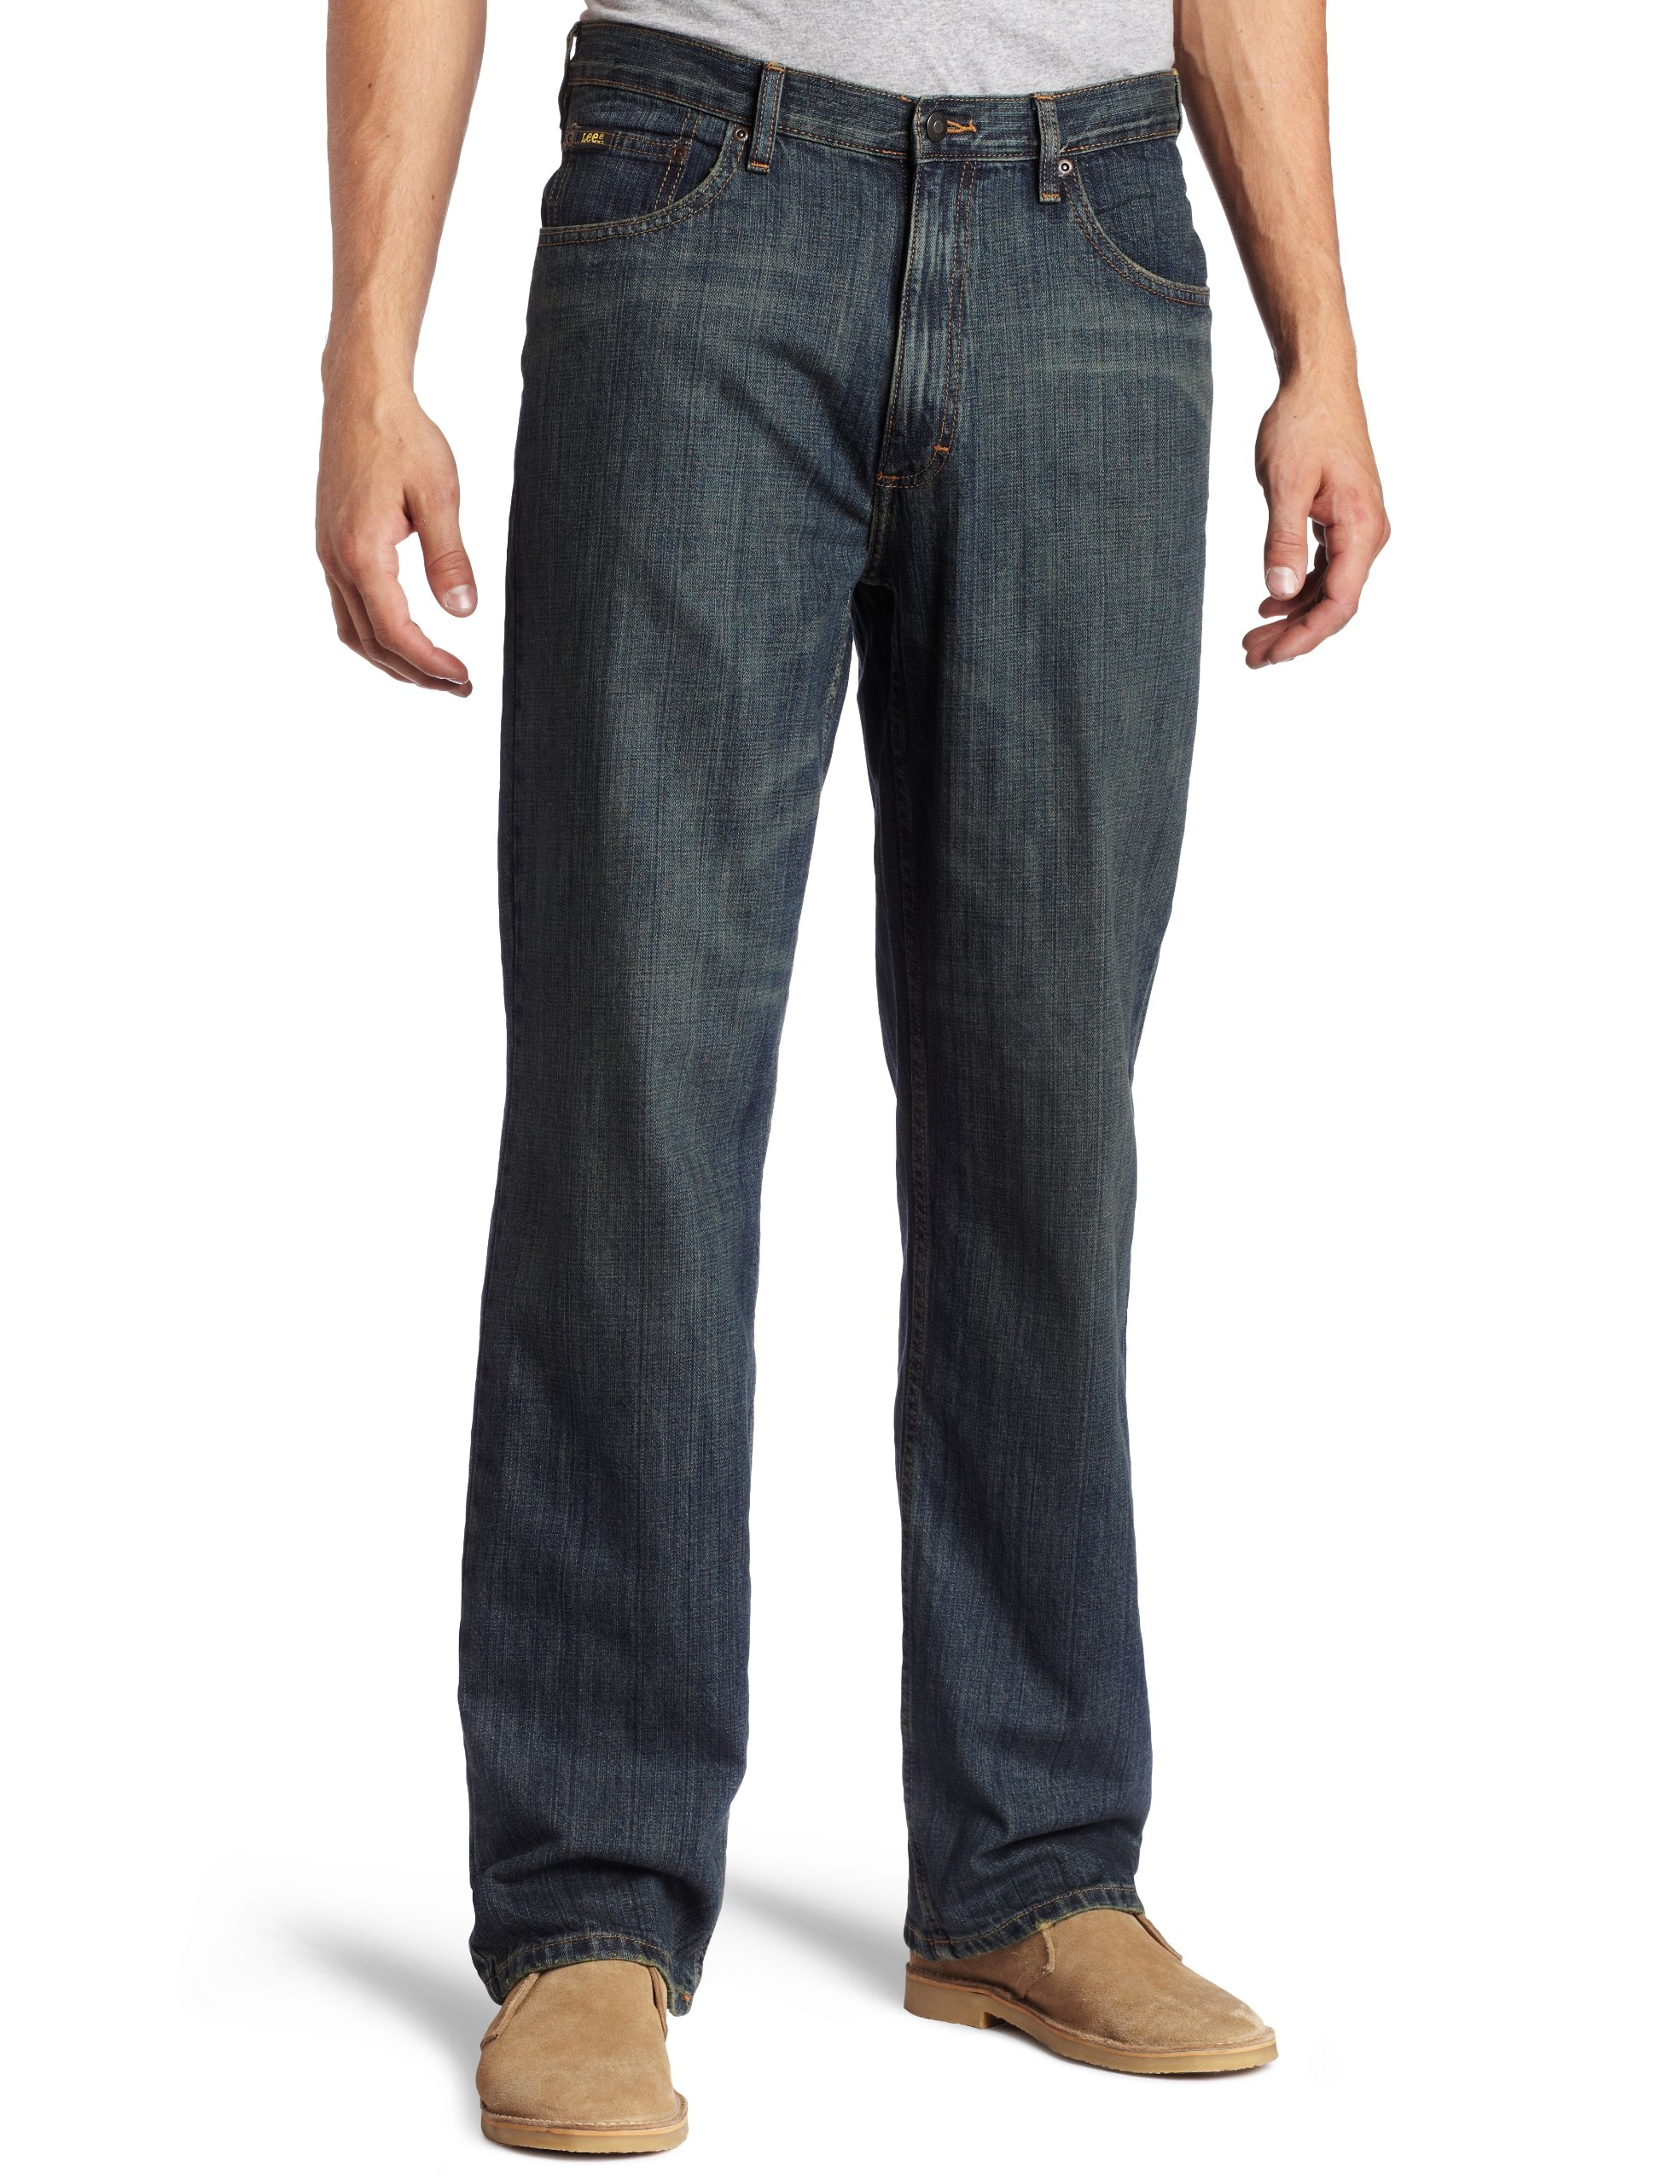 Lee Men's Premium Select Relaxed Fit Straight Leg Jean, Round Midnight, 42W x 29L